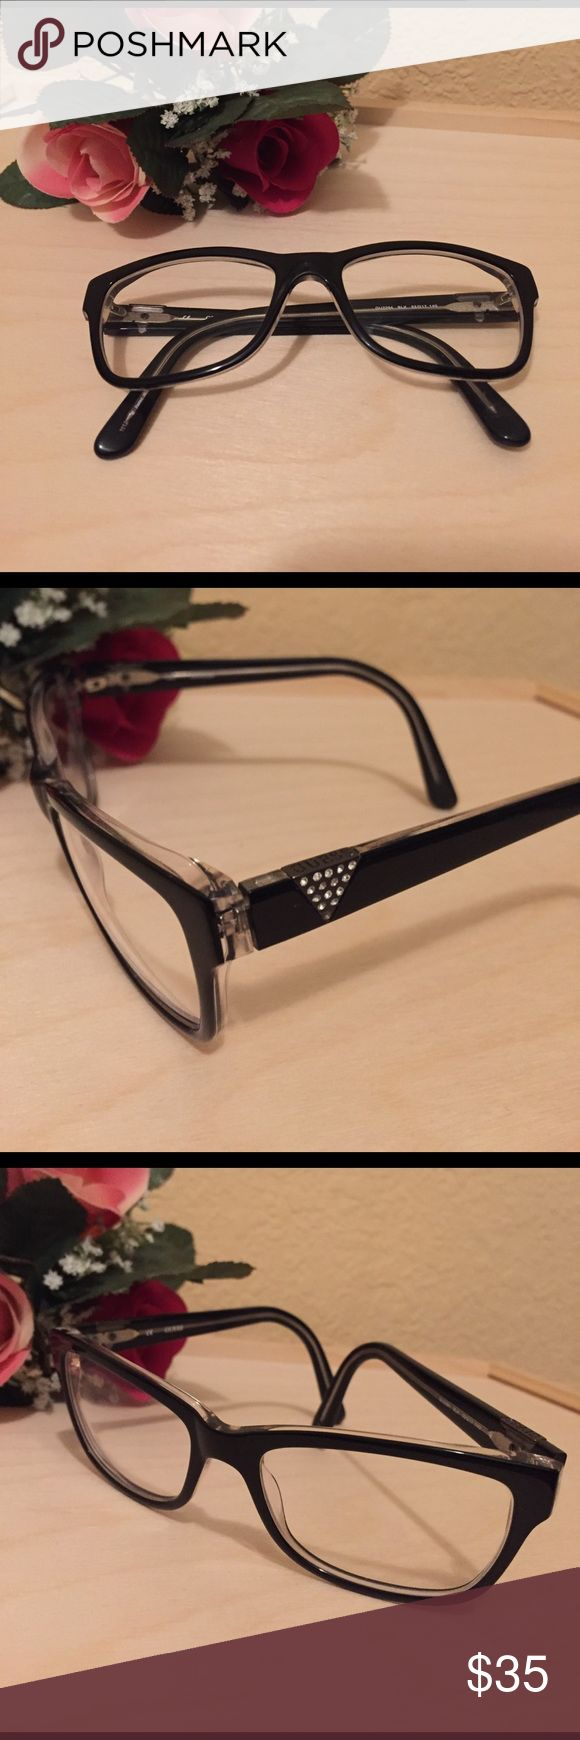 Guess Black Framed Glasses Super hip black frames glasses 👓 by Guess. Low RX black, with clear interior. Get these frames at a nice low price and send them off to have your RX added! Sorry, no case with these. Guess Accessories Glasses